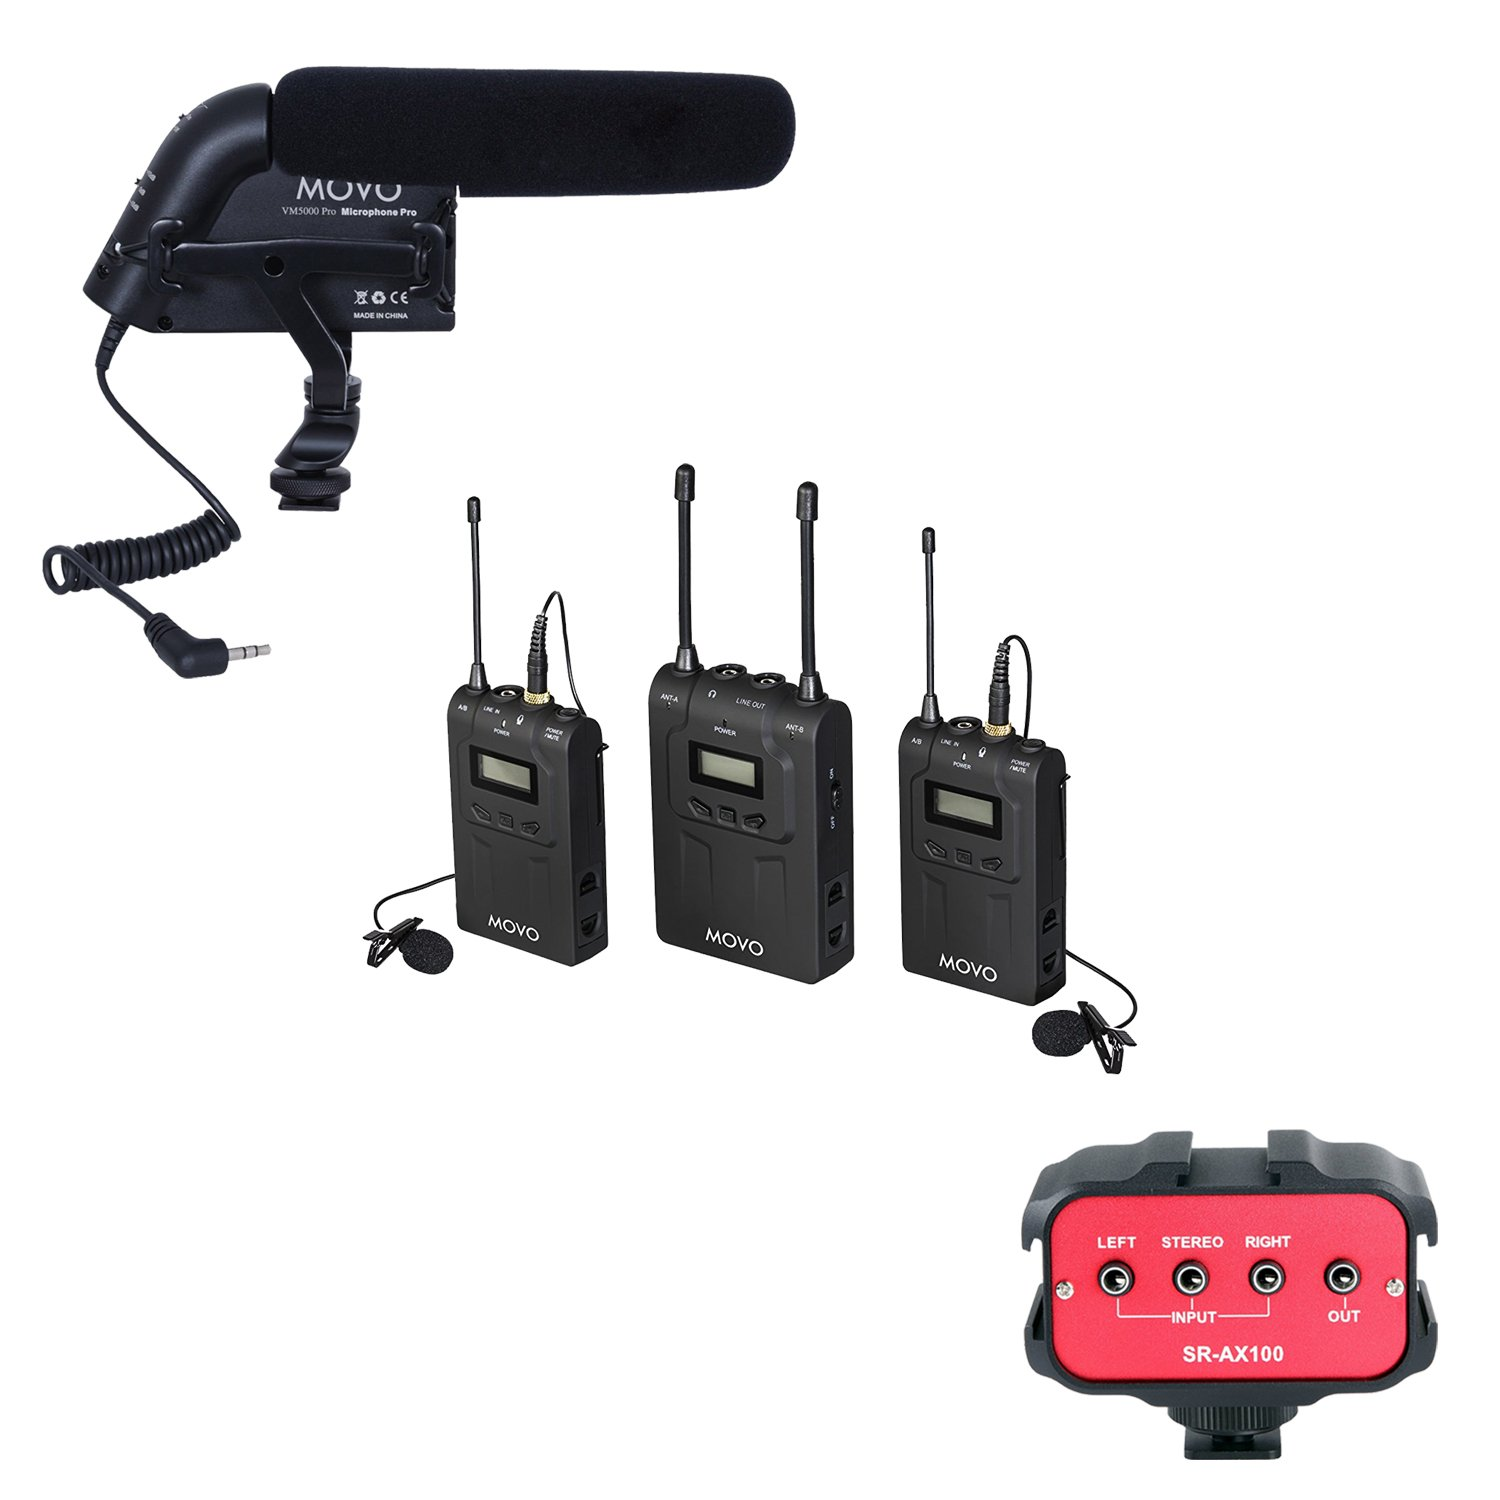 Movo Recording Enhancement Kit with UHF Wireless Lavalier Microphone System, Shotgun Condenser Video Microphone, and 2 Channel 3.5mm Audio Adapter for DSLR Cameras & Camcorders